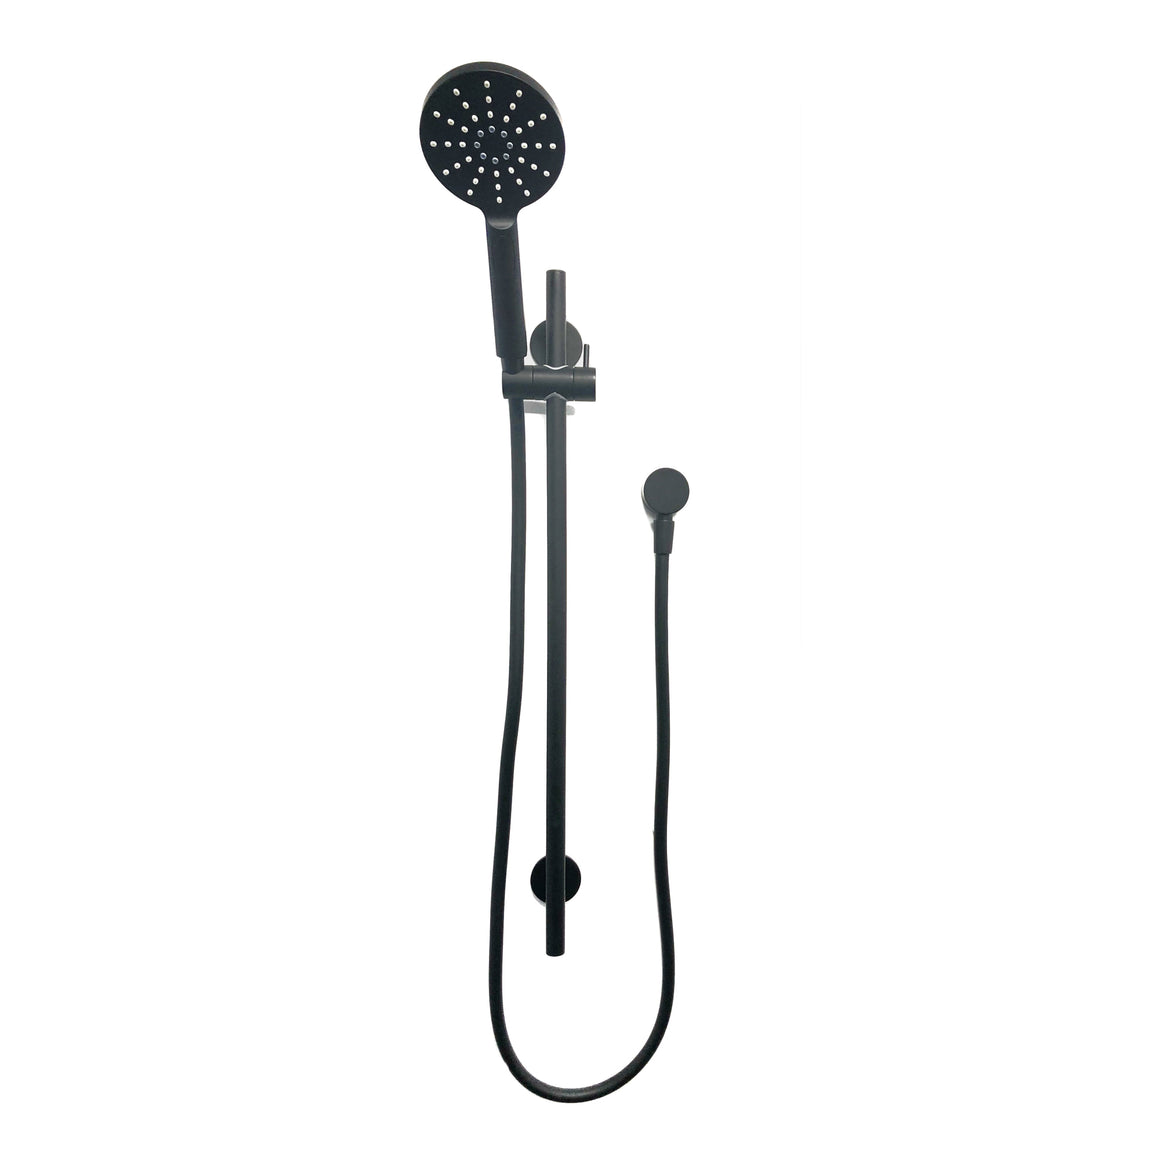 Willow Slide Shower – Matt Black